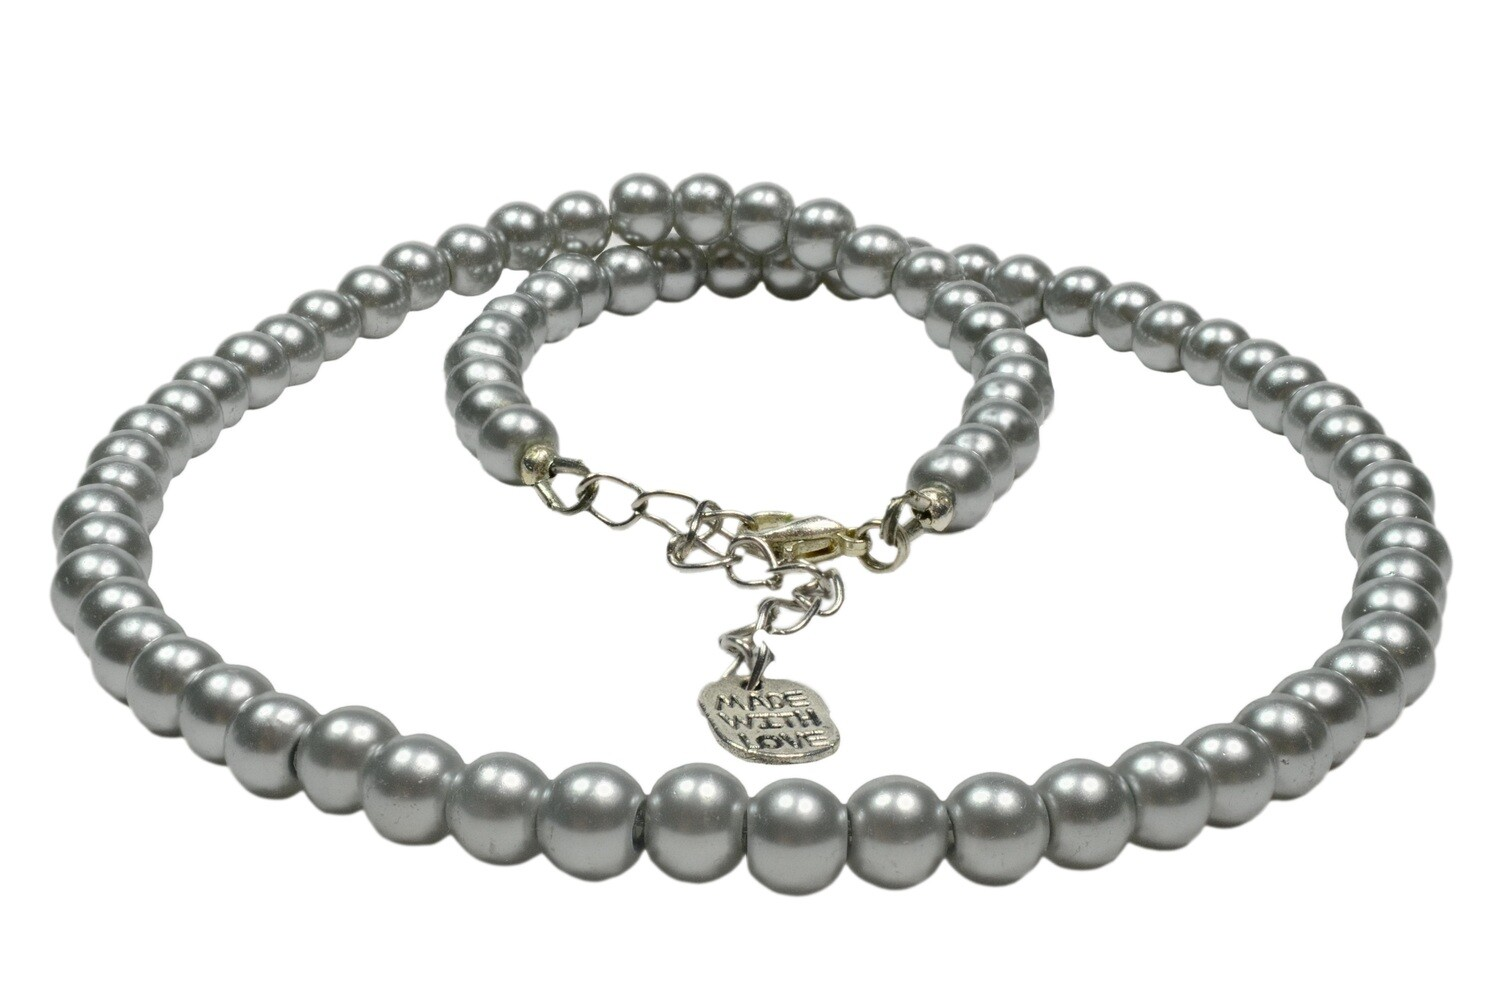 Silver Grey  pearl necklace bracelet earrings SET gift for Mother Wife Bridesmaid Christmas Birthday